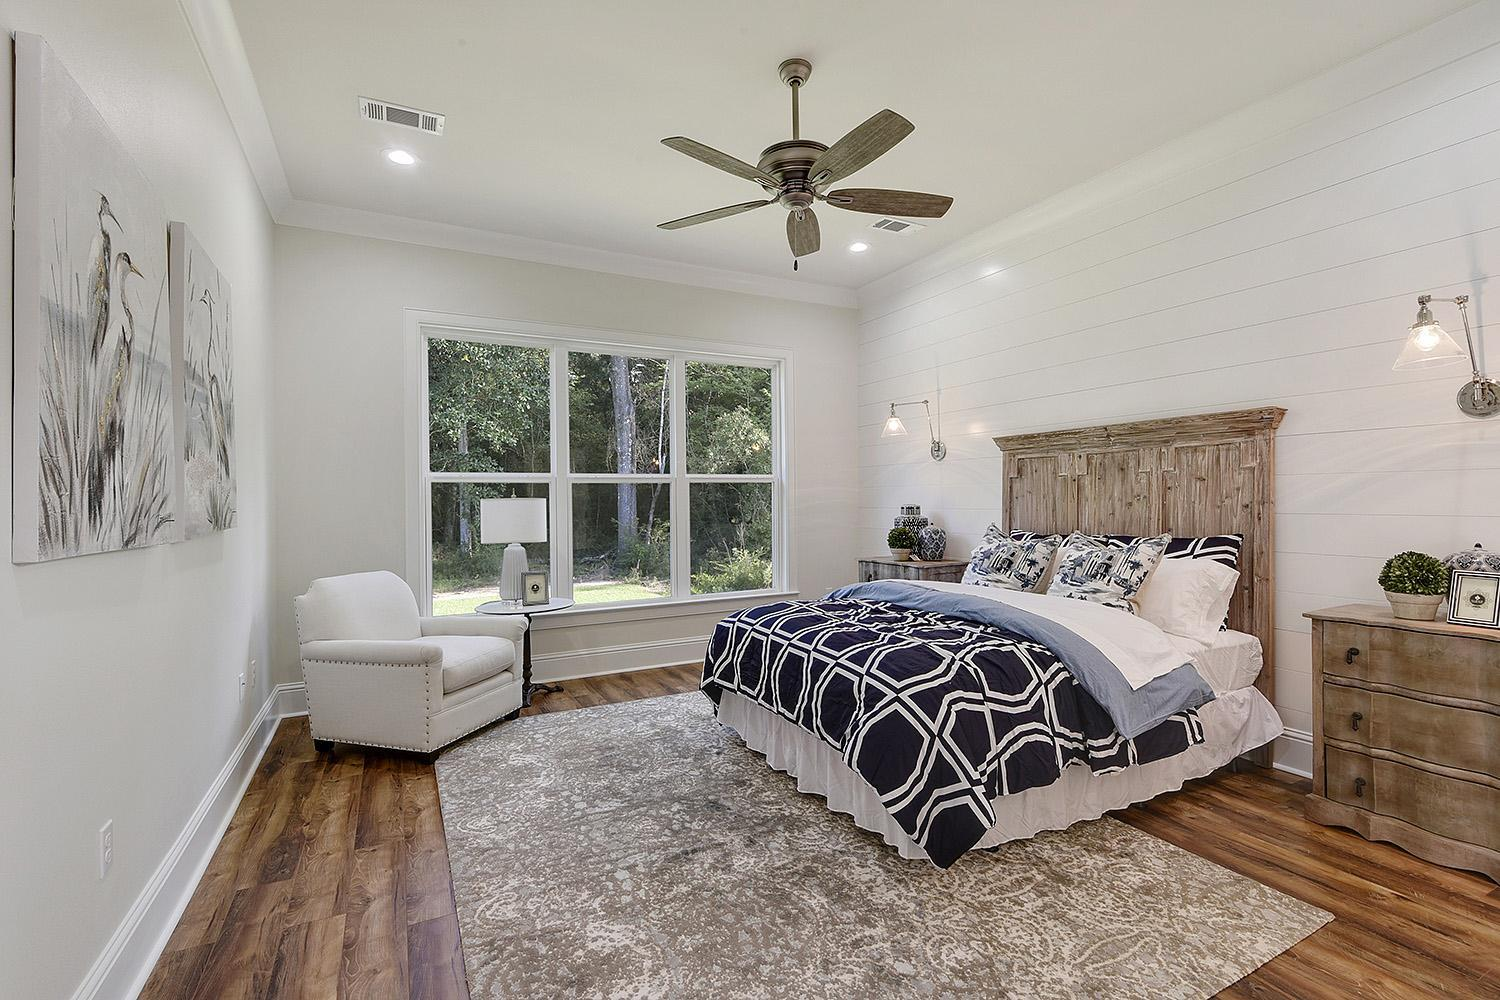 Bedroom featured in the Cottonwood By Highland Homes in New Orleans, LA